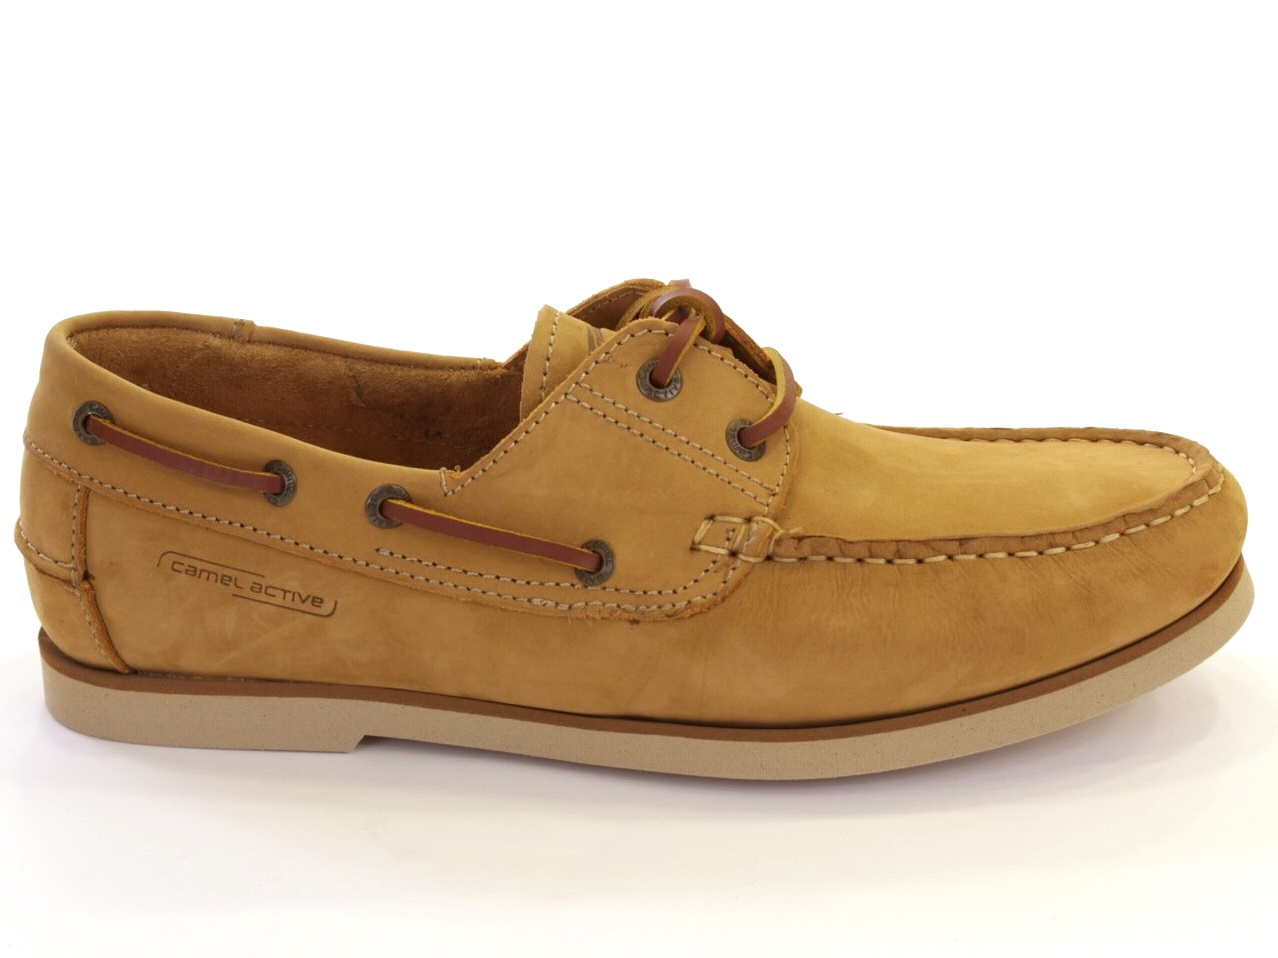 Casual Shoes Camel Active - 328 48611